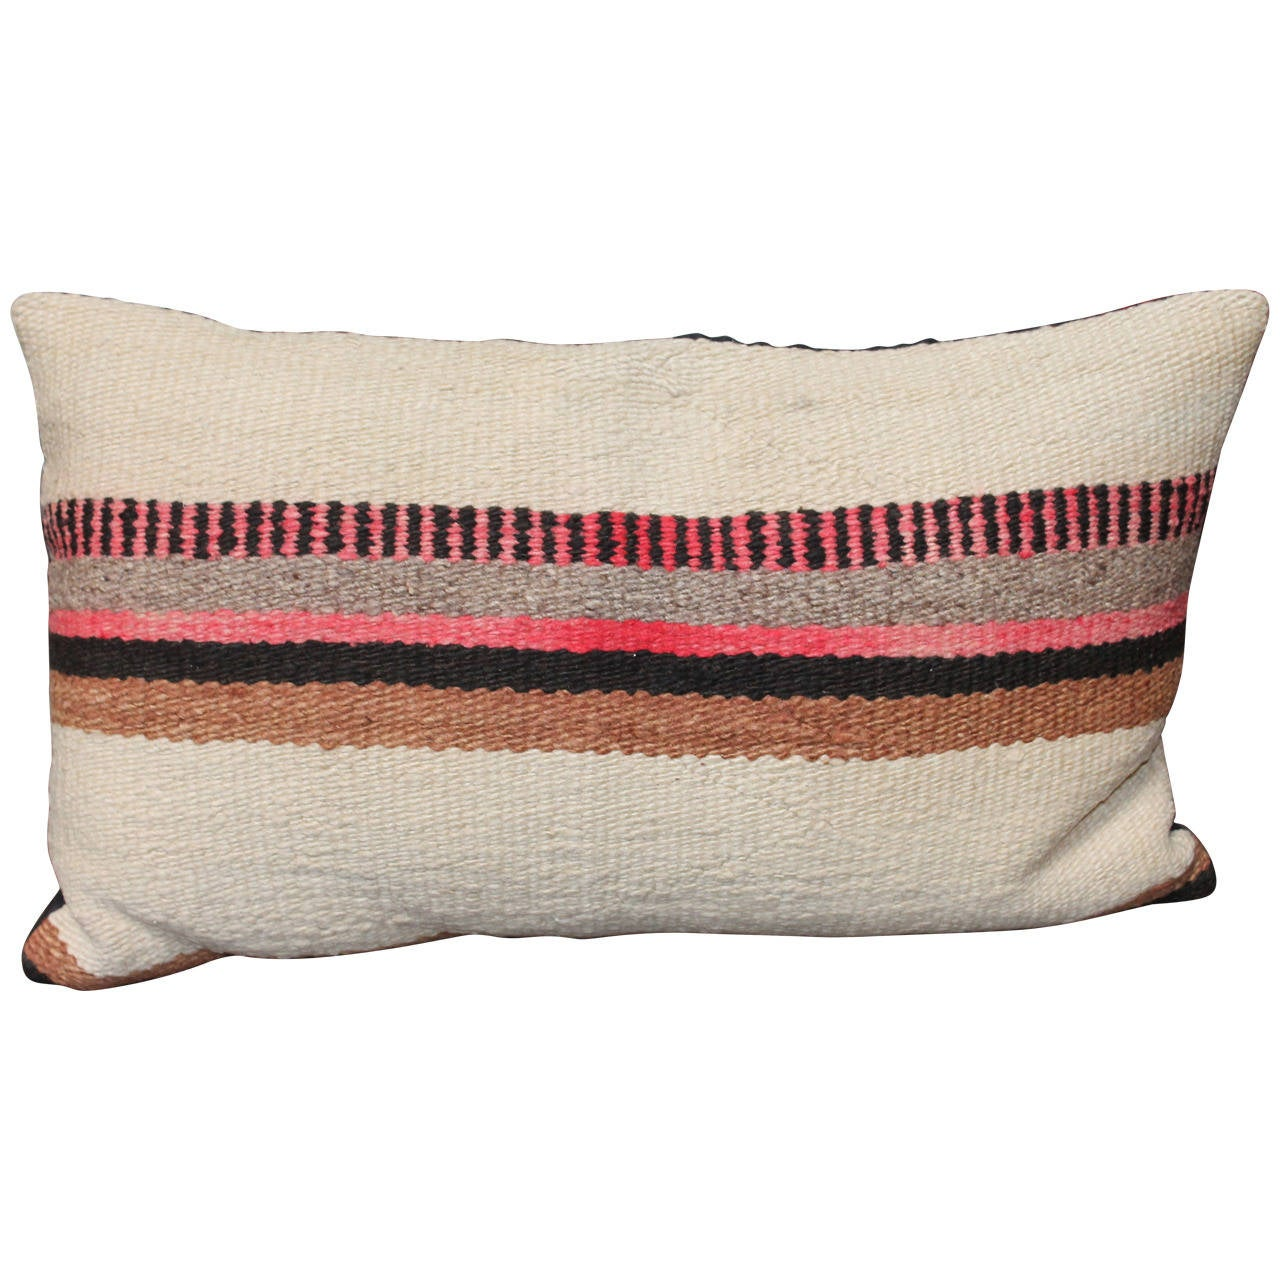 Striped Navajo Indian Weaving Pillow At 1stdibs